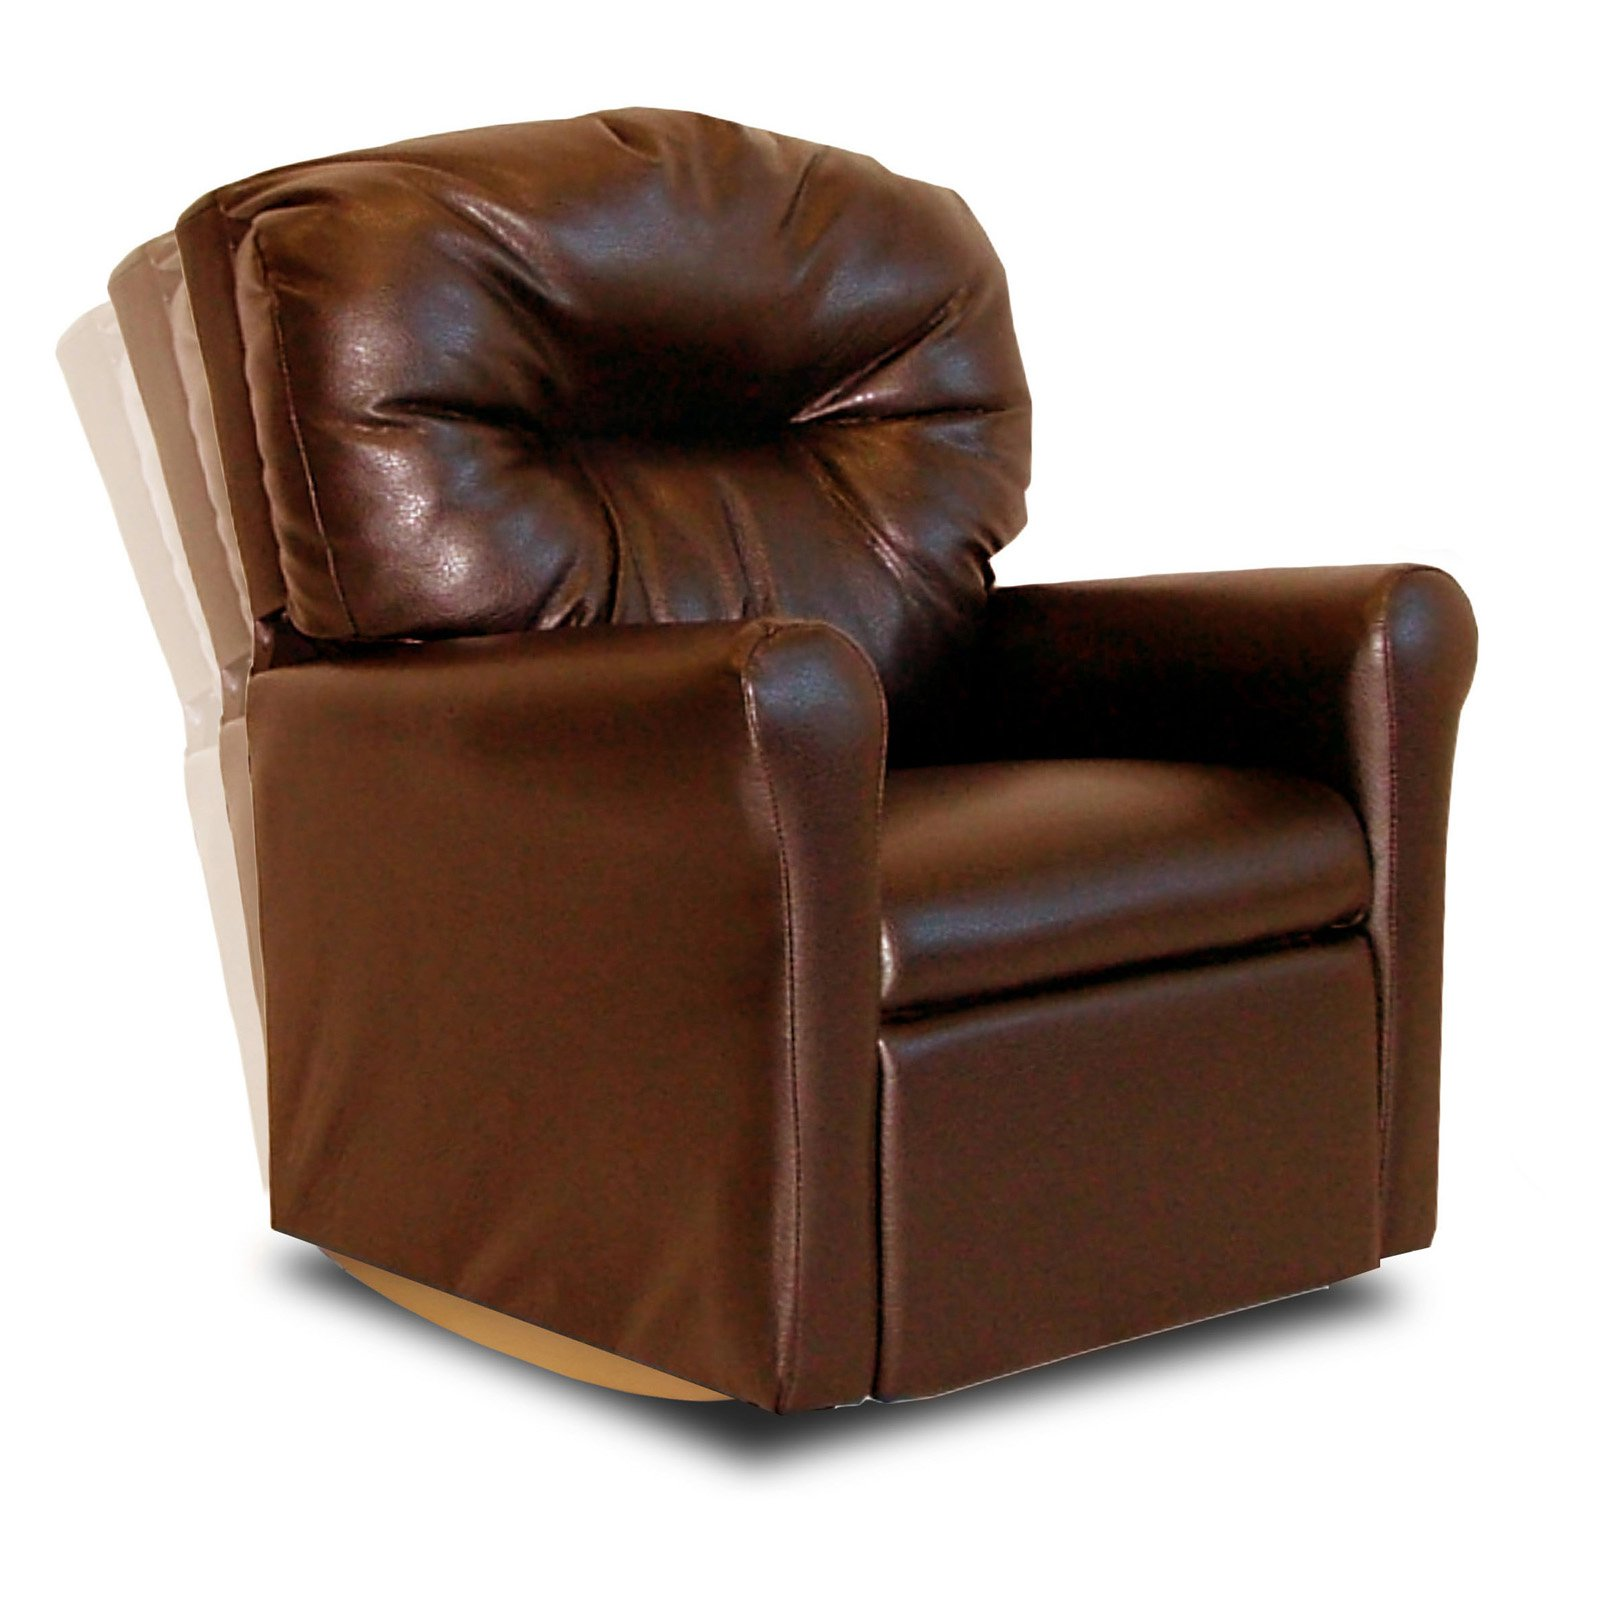 Dozydotes Contemporary Rocker Recliner - Pecan Brown